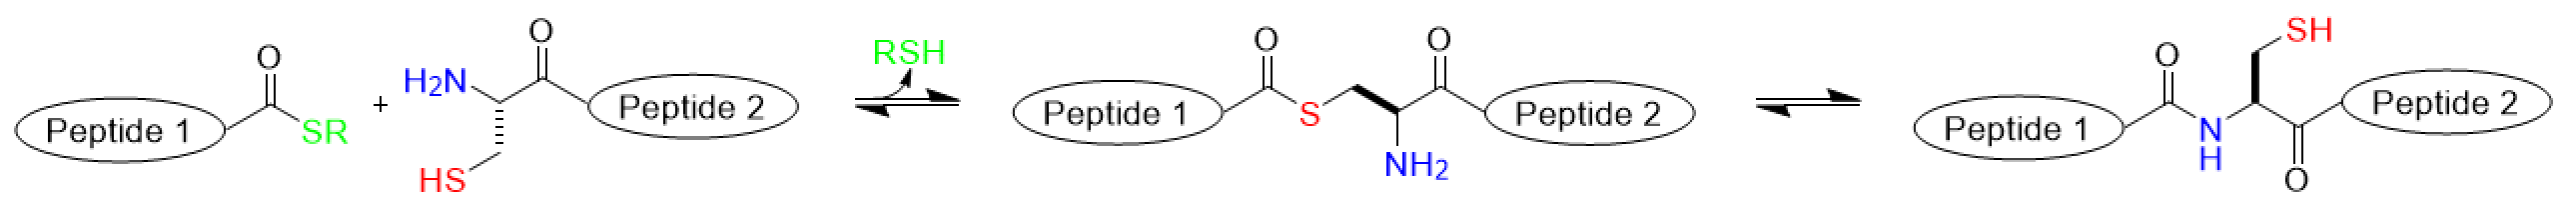 Synthesis of C-Terminus MEGA-Linked Peptides